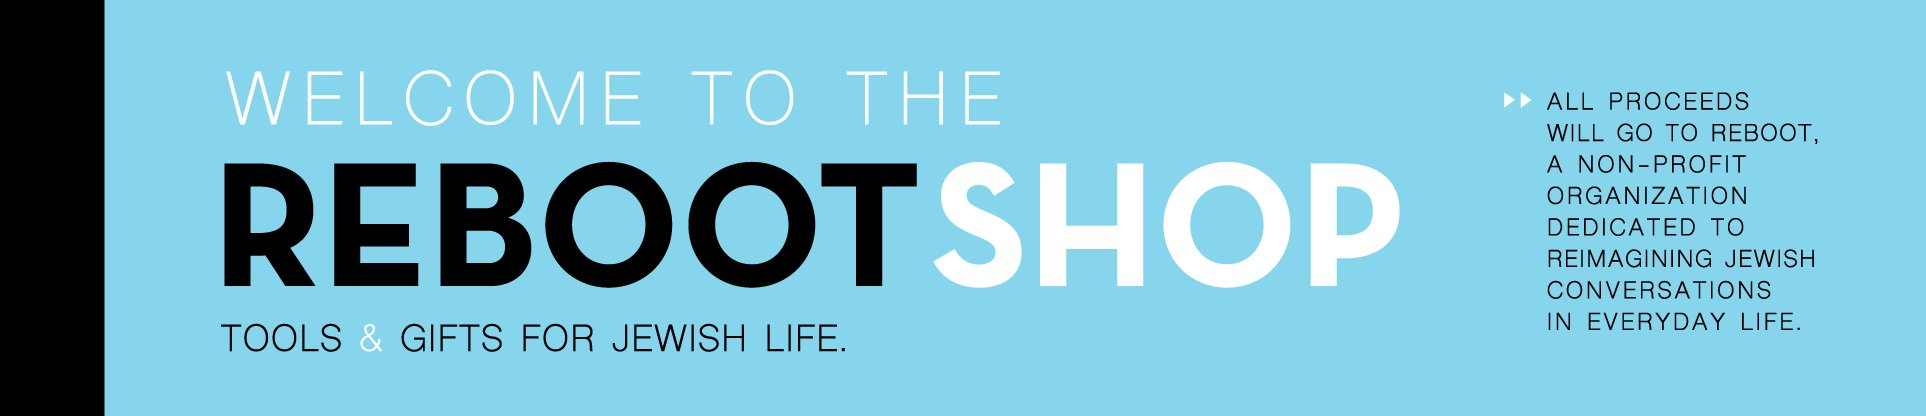 Jewish Gifts, Jewelry, Judaica, Hanukkah Gifts: Welcome to Reboot Shop